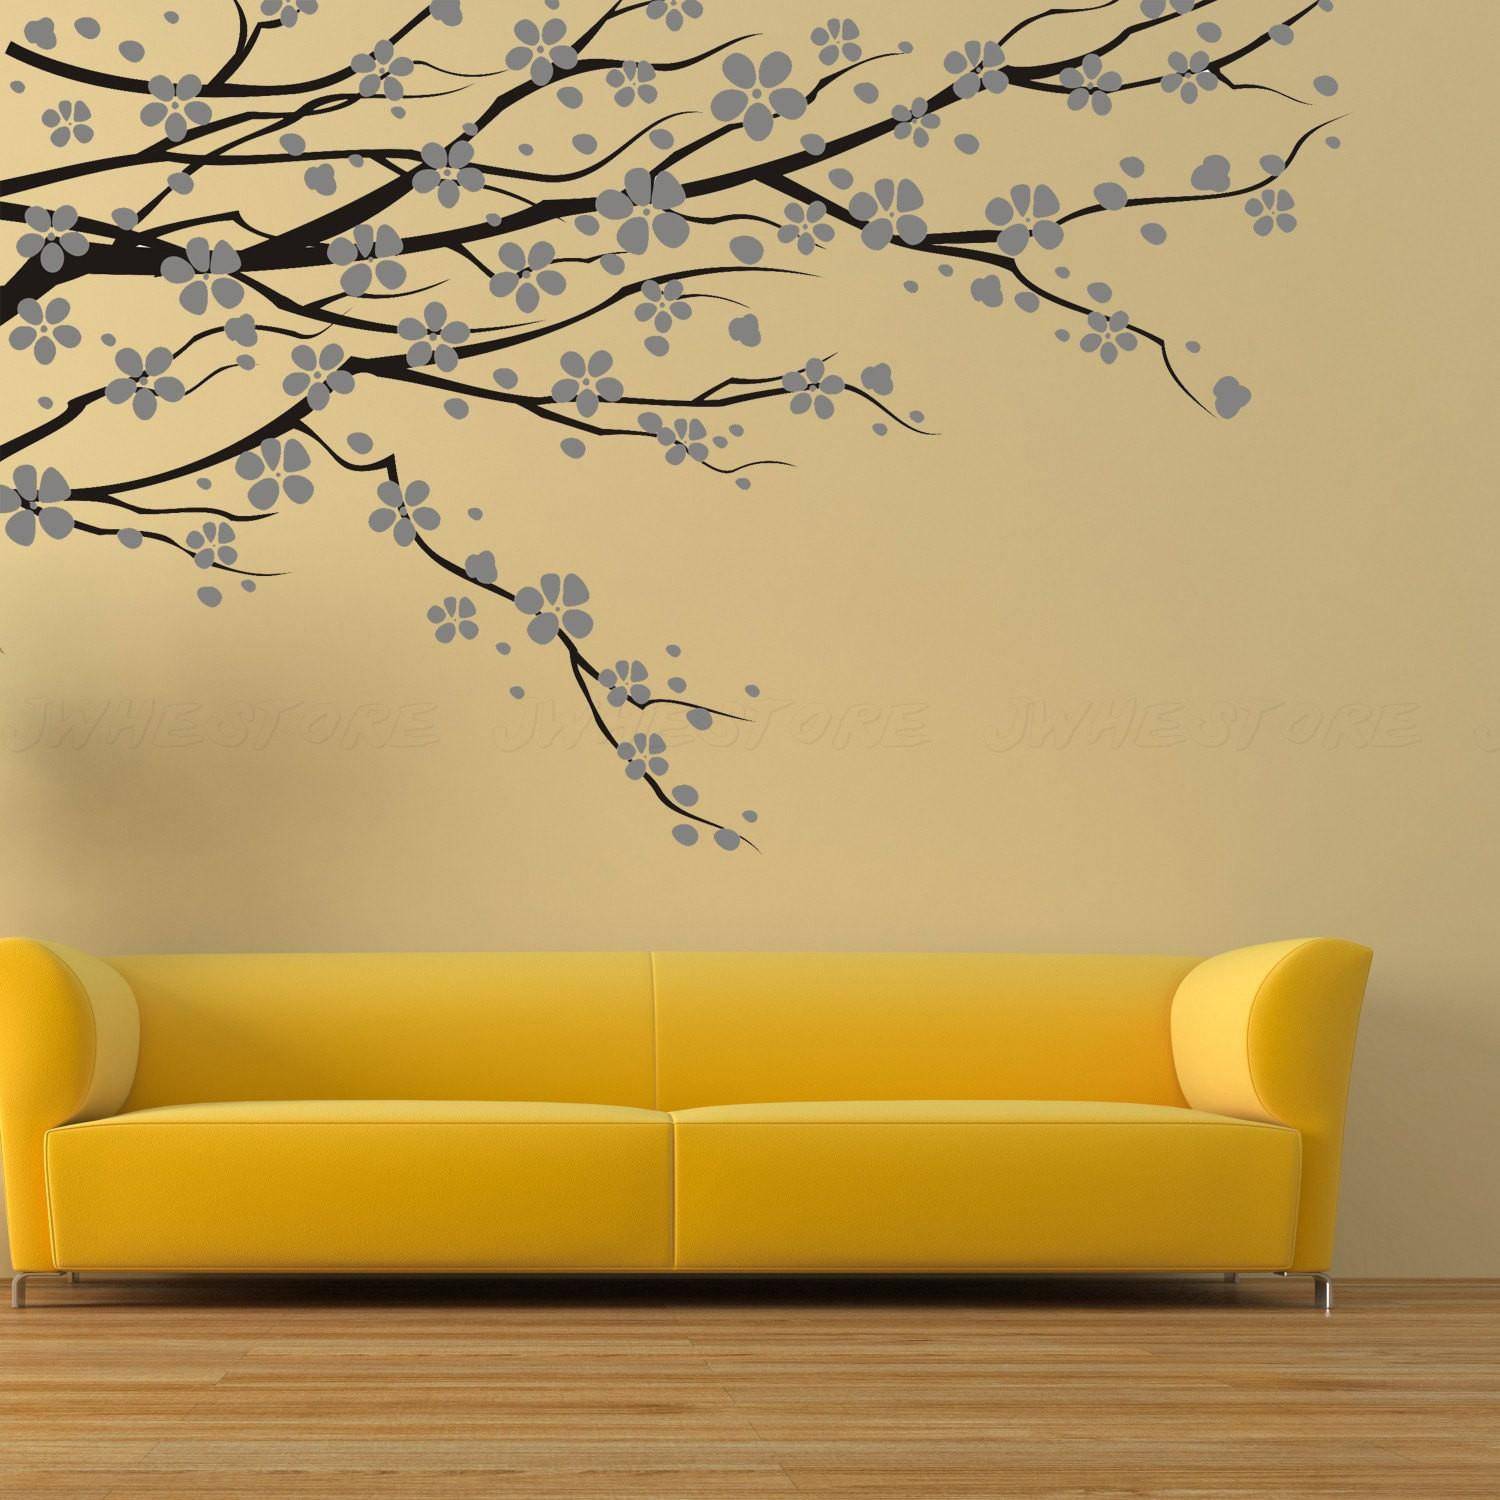 Branch Wall Decals Branches Tree Decal Nursery